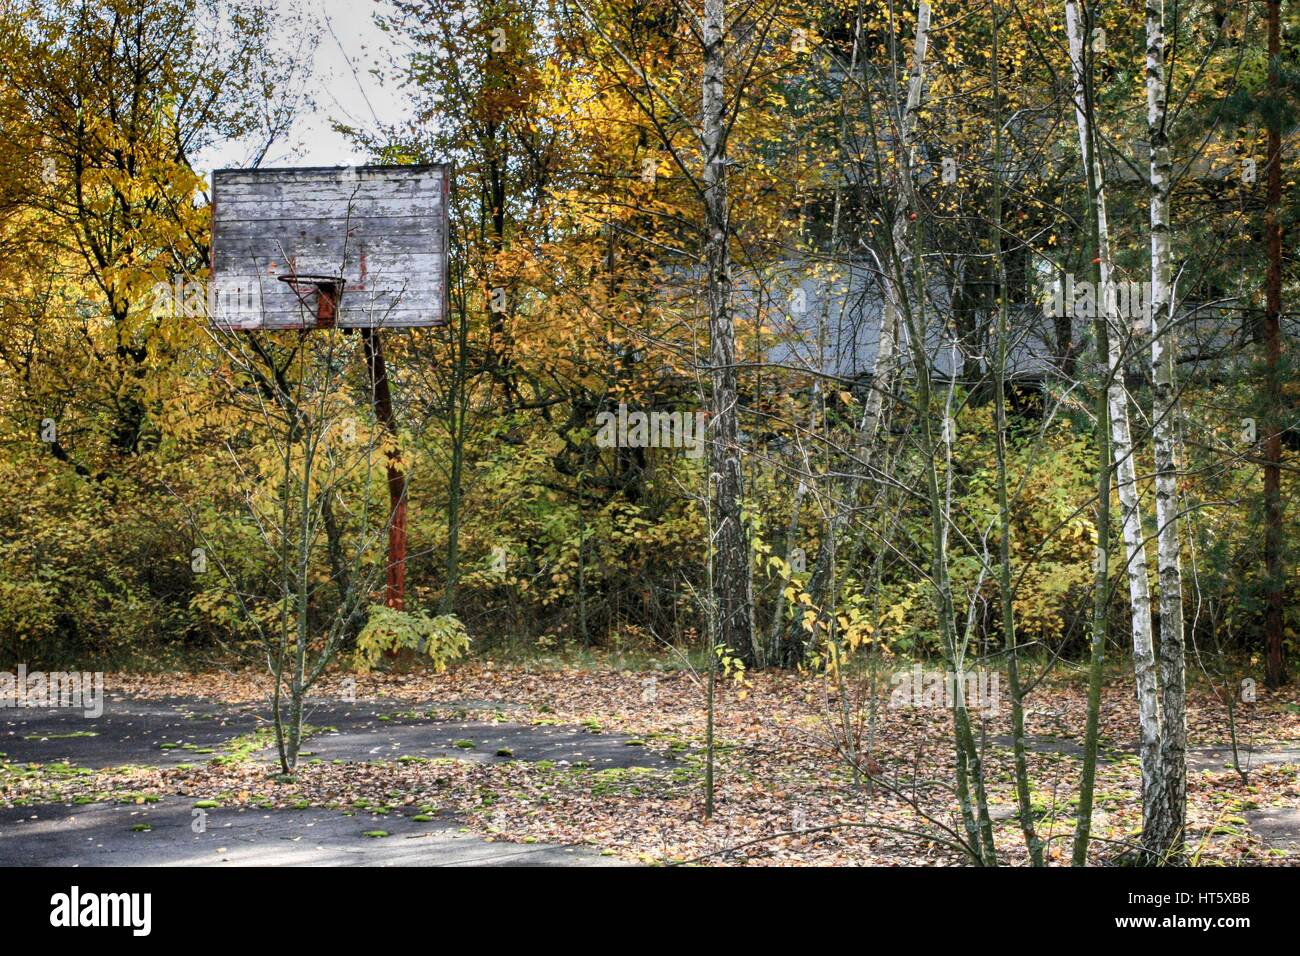 Chernobyl, Pripyat – abandoned building taken over by vegetation after nuclear disaster - Stock Image